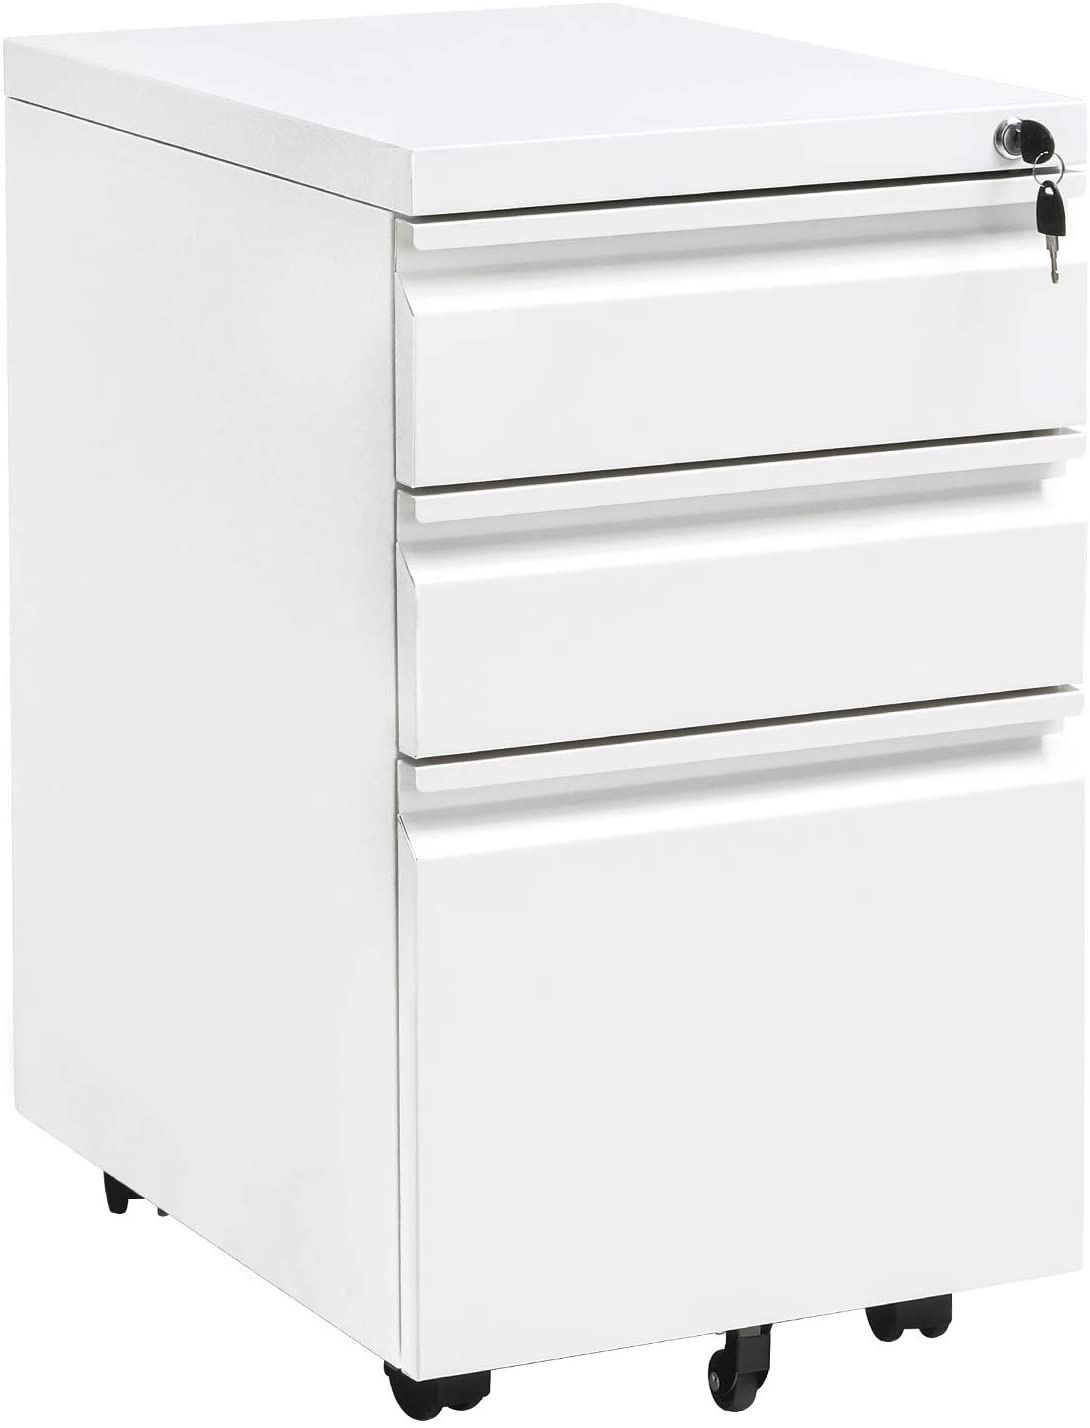 2 Drawer Rolling Wood File Cabinet 2021 In 2020 Filing Cabinet Metal Filing Cabinet Cabinet